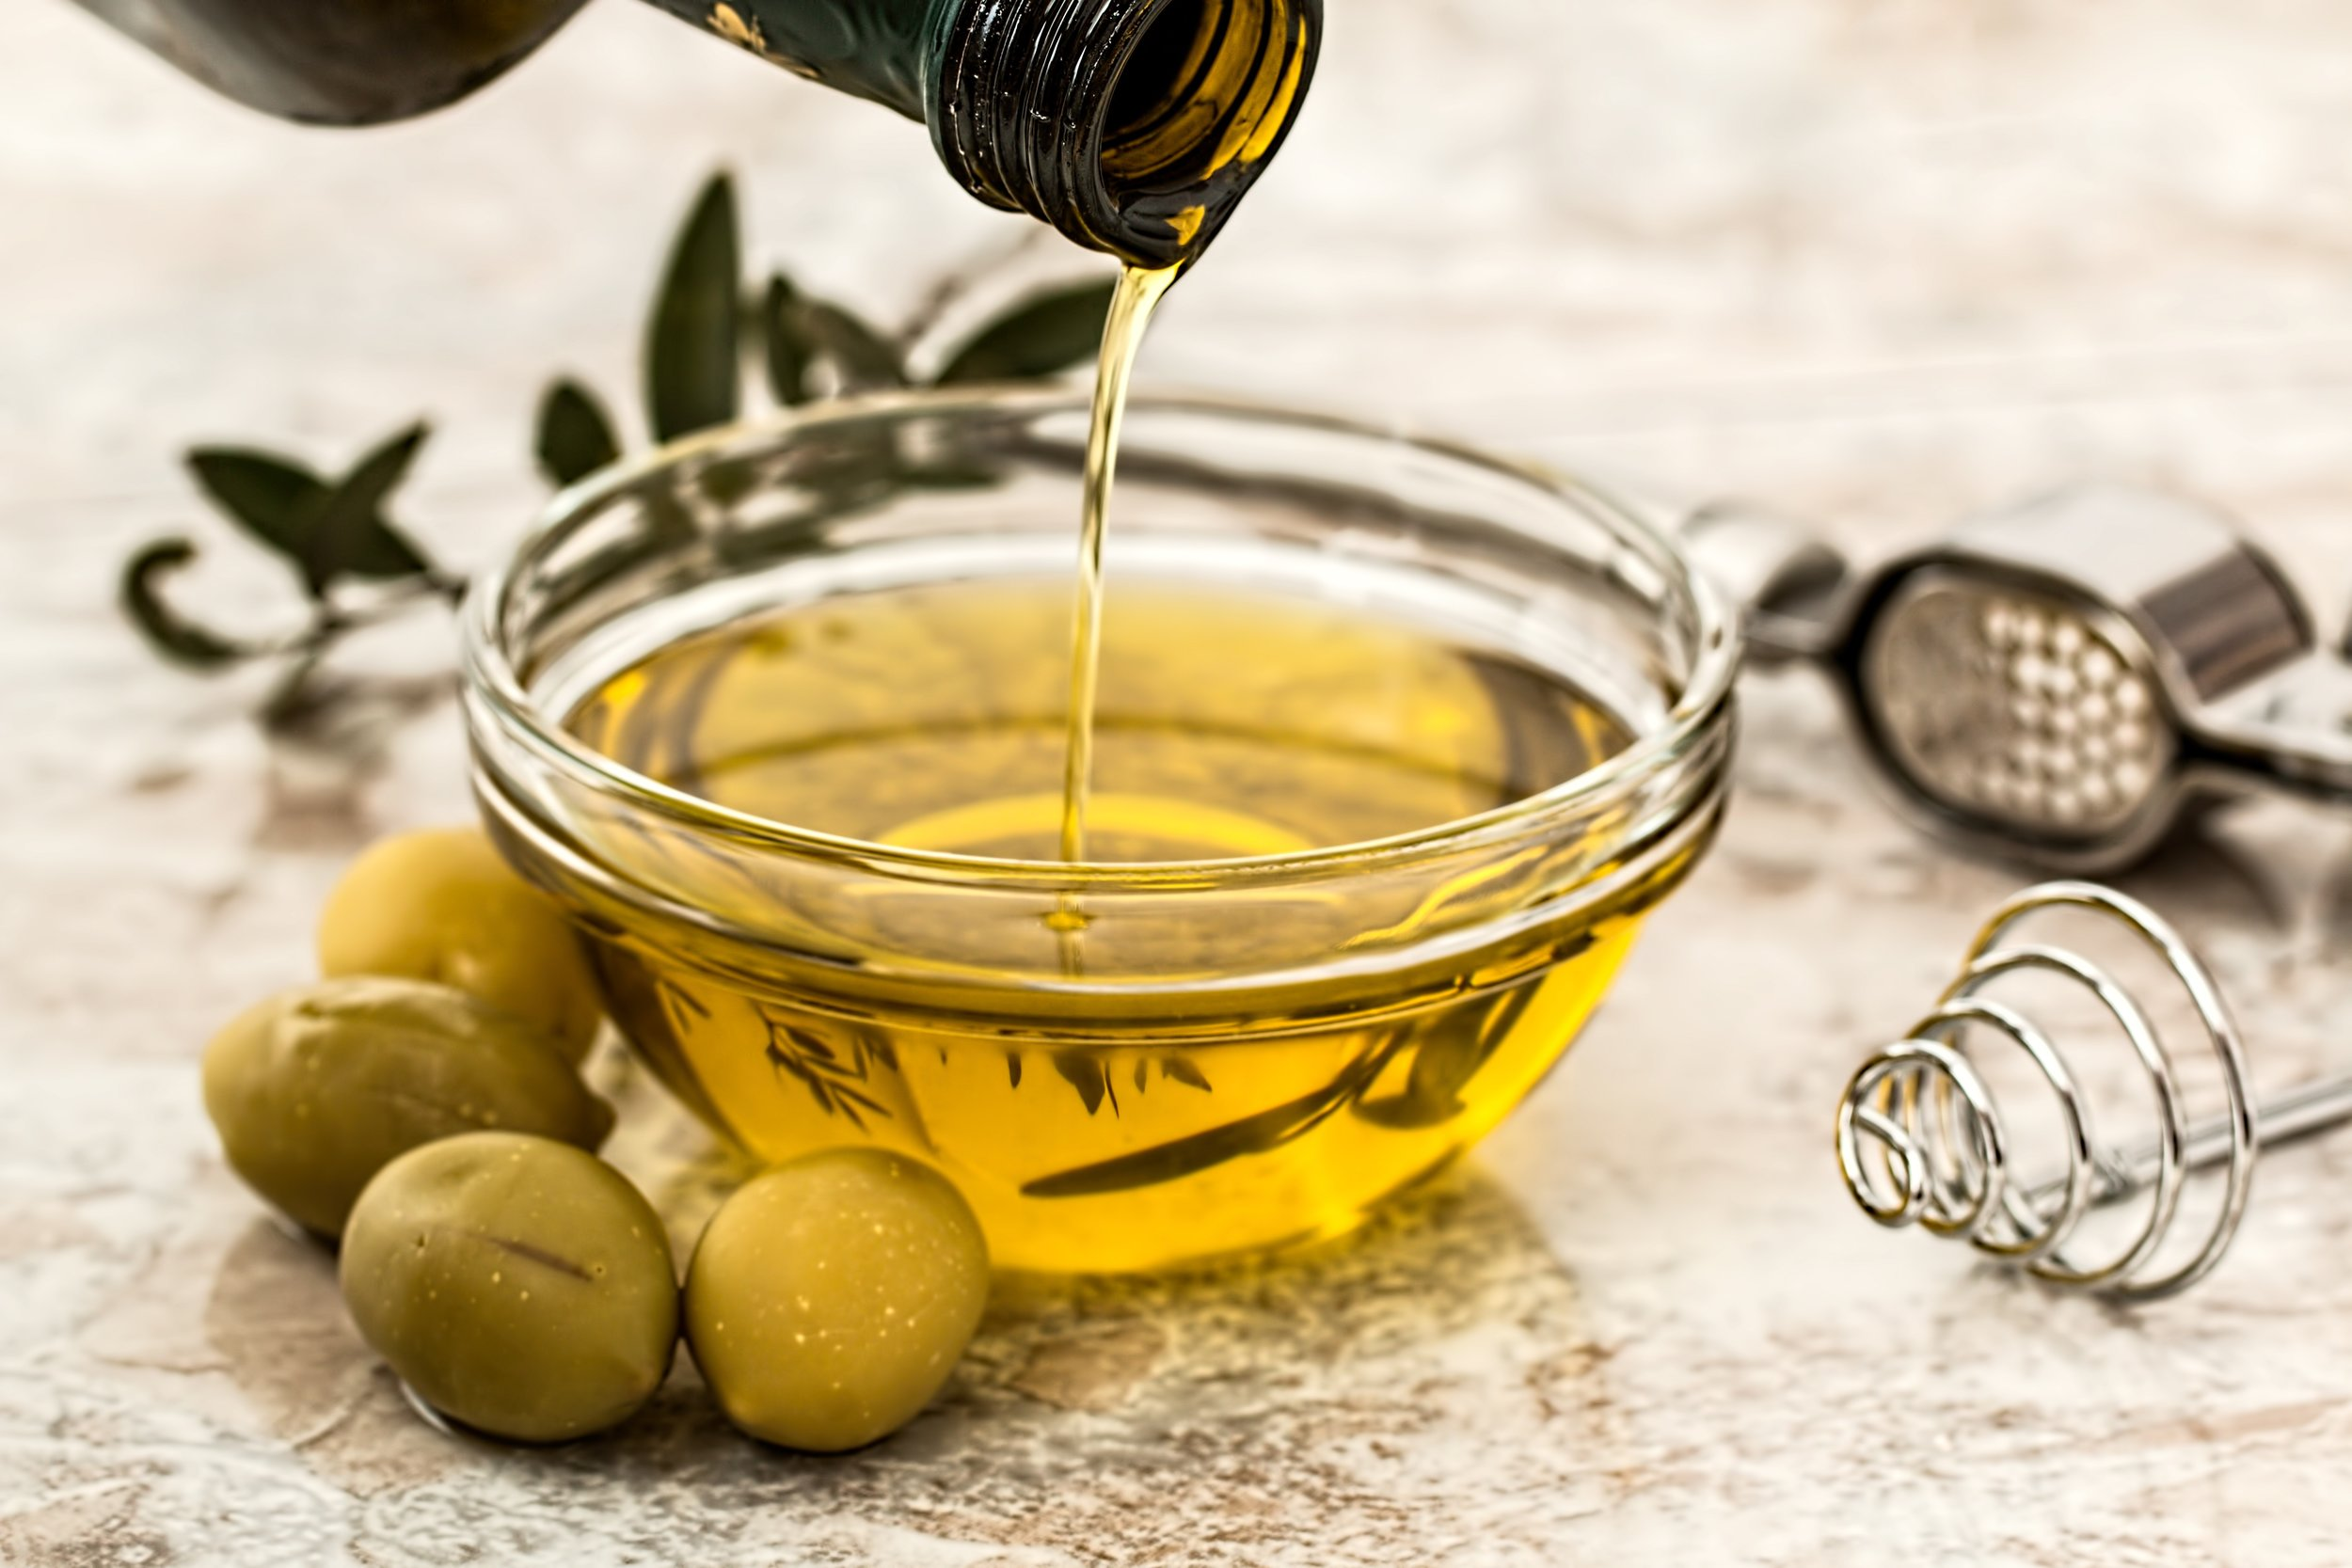 I covered most meals in extra virgin olive oil to boost the fat content in my ketogenic diet